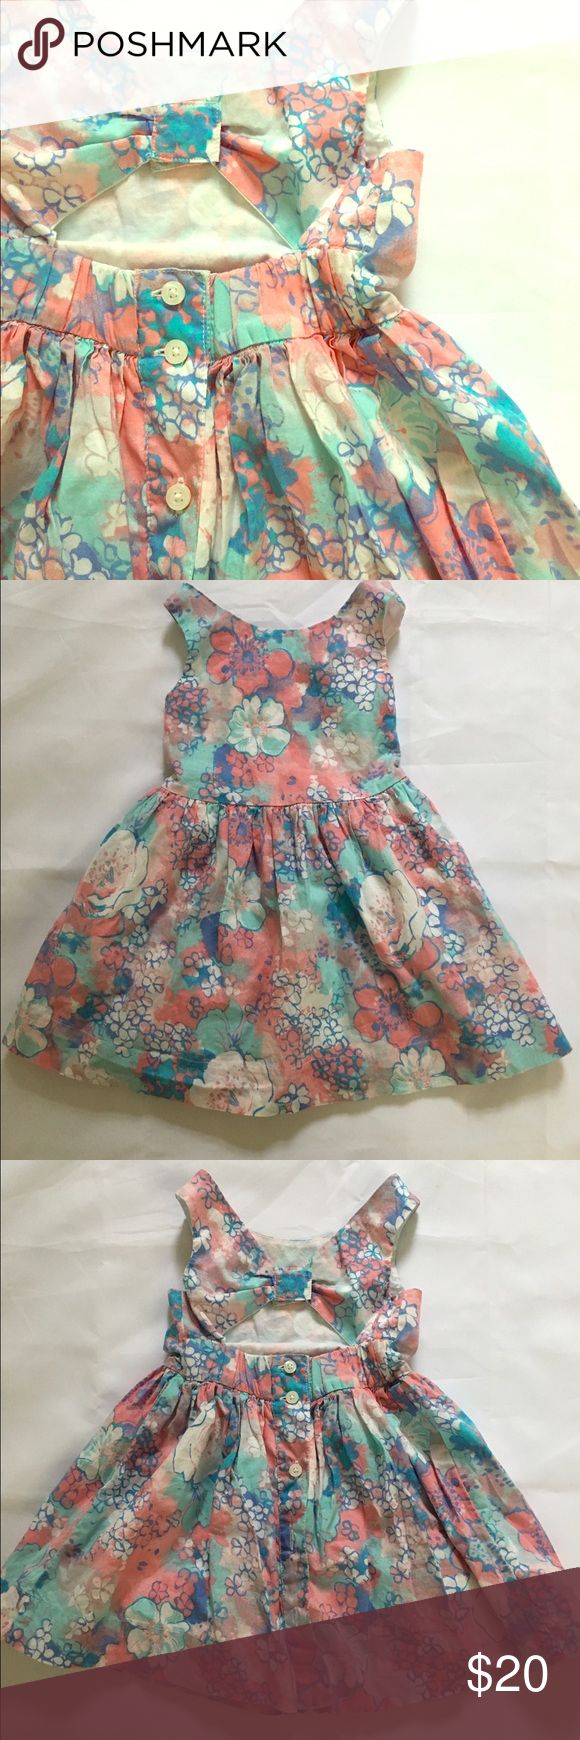 Baby Gap Floral Dress Only worn a few times in great condition. No flaws. Open back. GAP Dresses